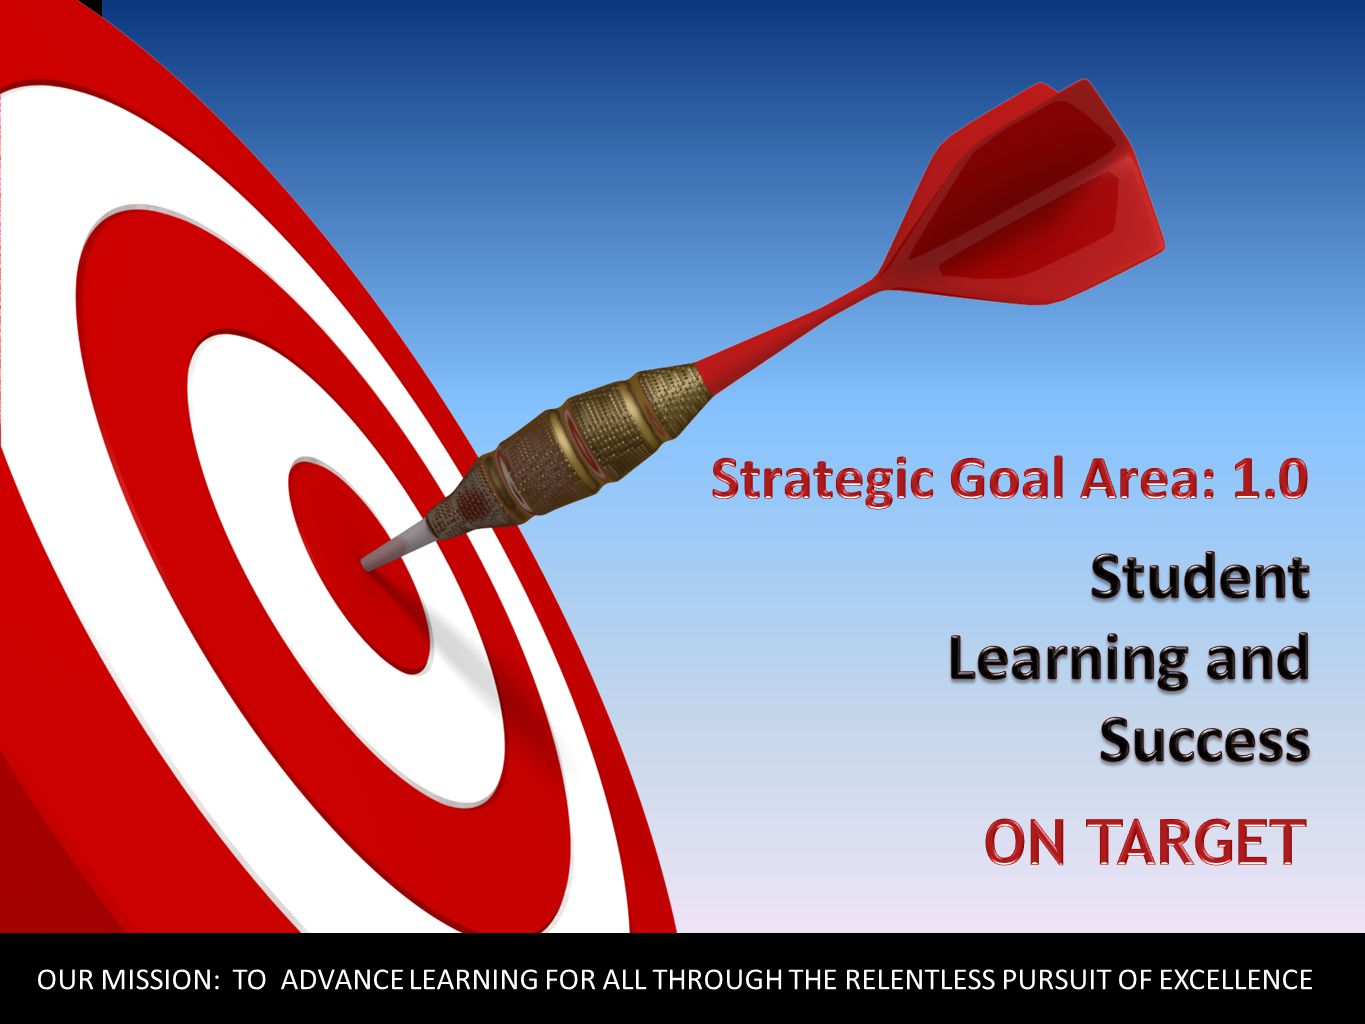 ON TARGET OUR MISSION: TO ADVANCE LEARNING FOR ALL THROUGH THE RELENTLESS PURSUIT OF EXCELLENCE